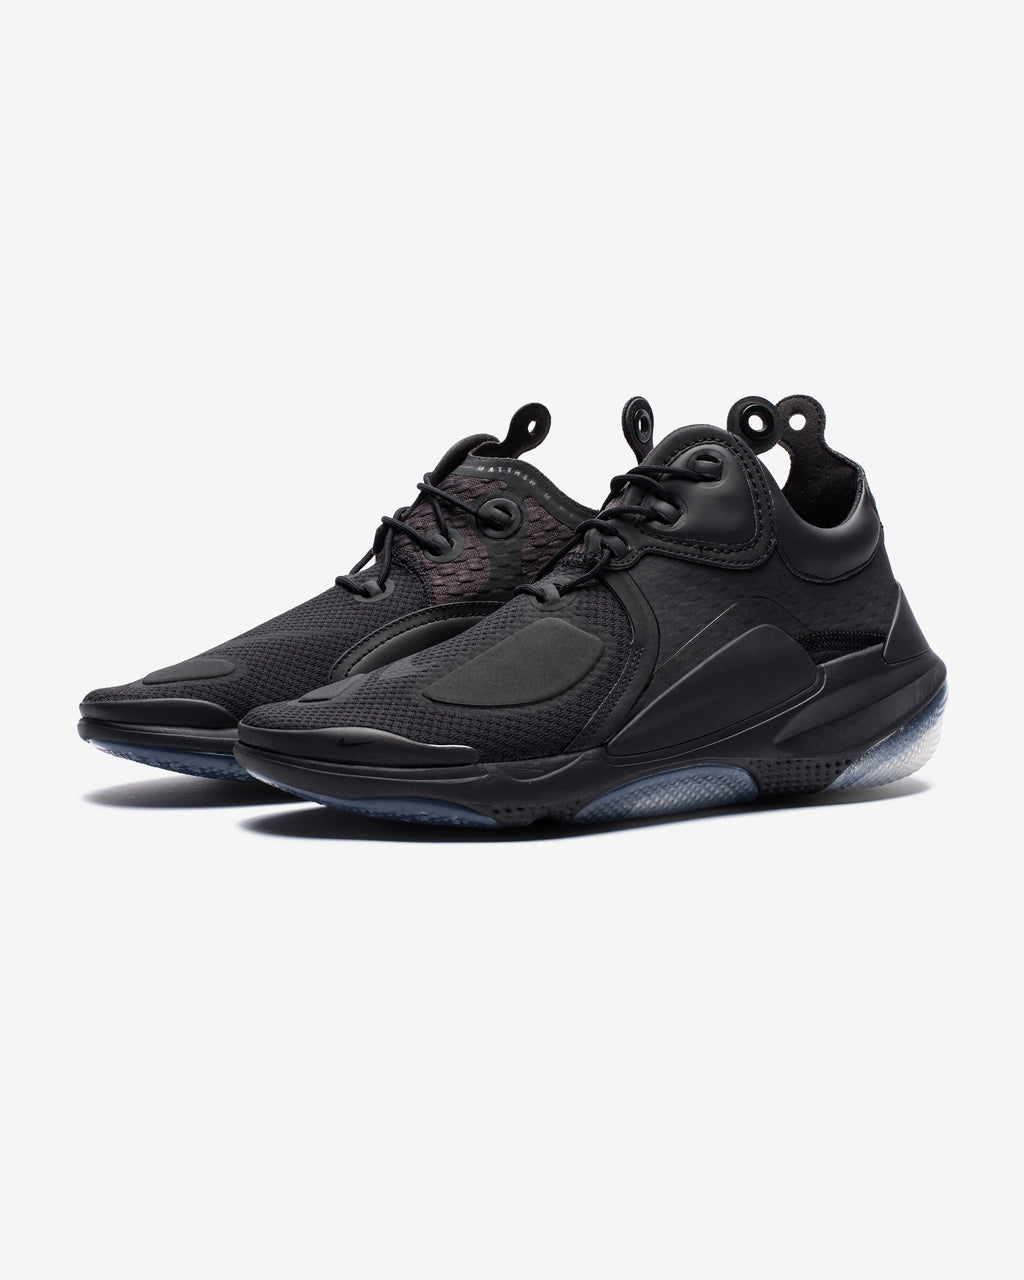 NIKE X MMW JOYRIDE CC3 SETTER - BLACK/UNIVERSITYRED